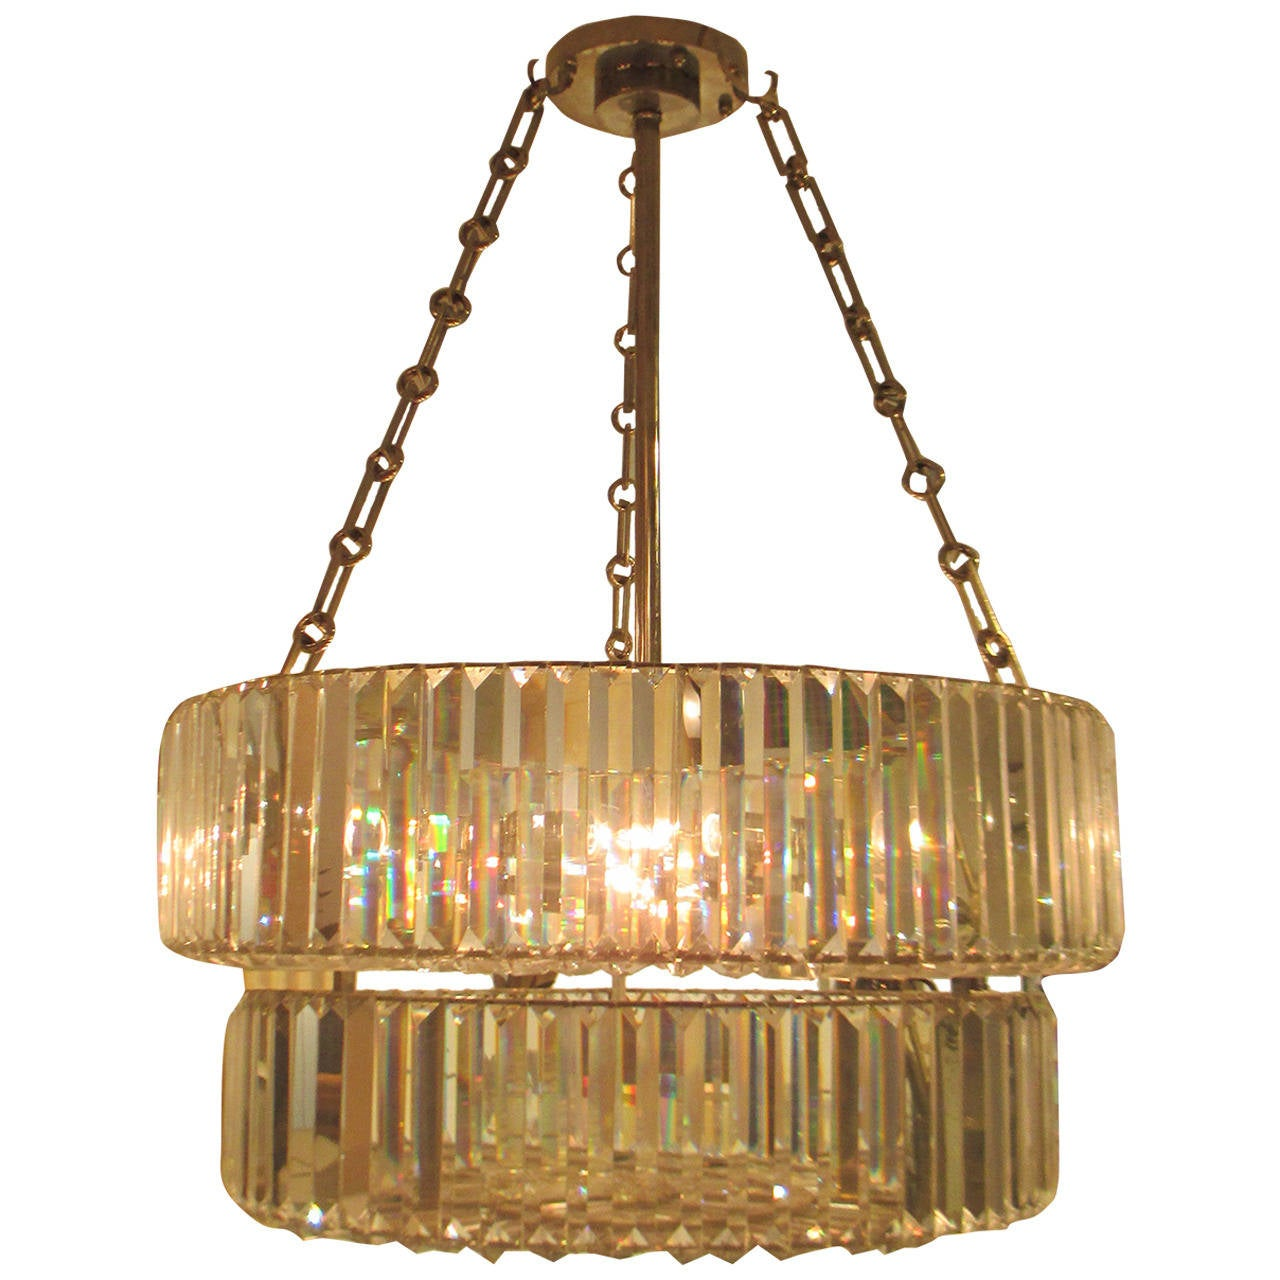 Nickel-Plated and Crystal Chandelier in the Art Deco Manner